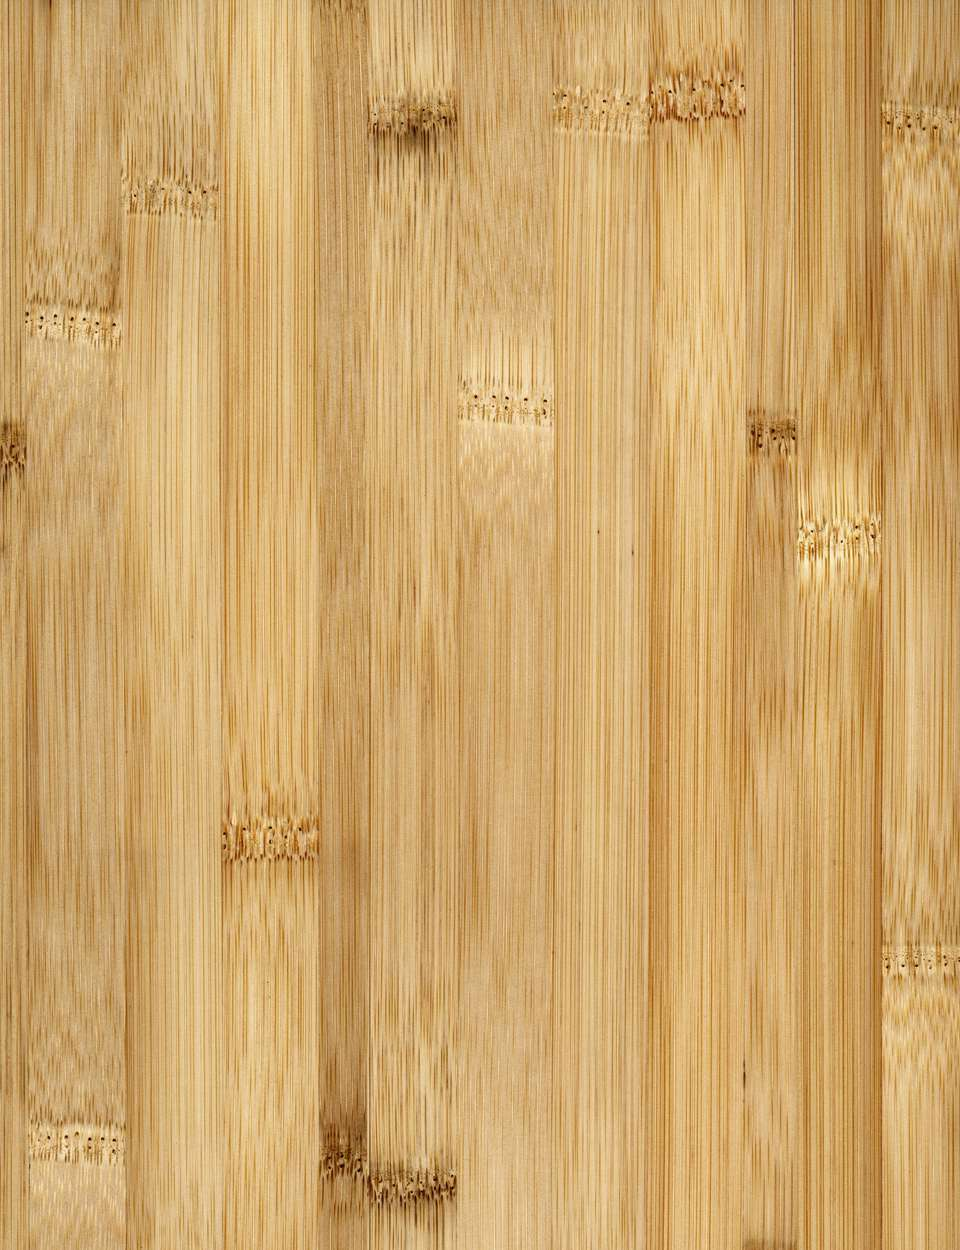 Bamboo floor, full frame